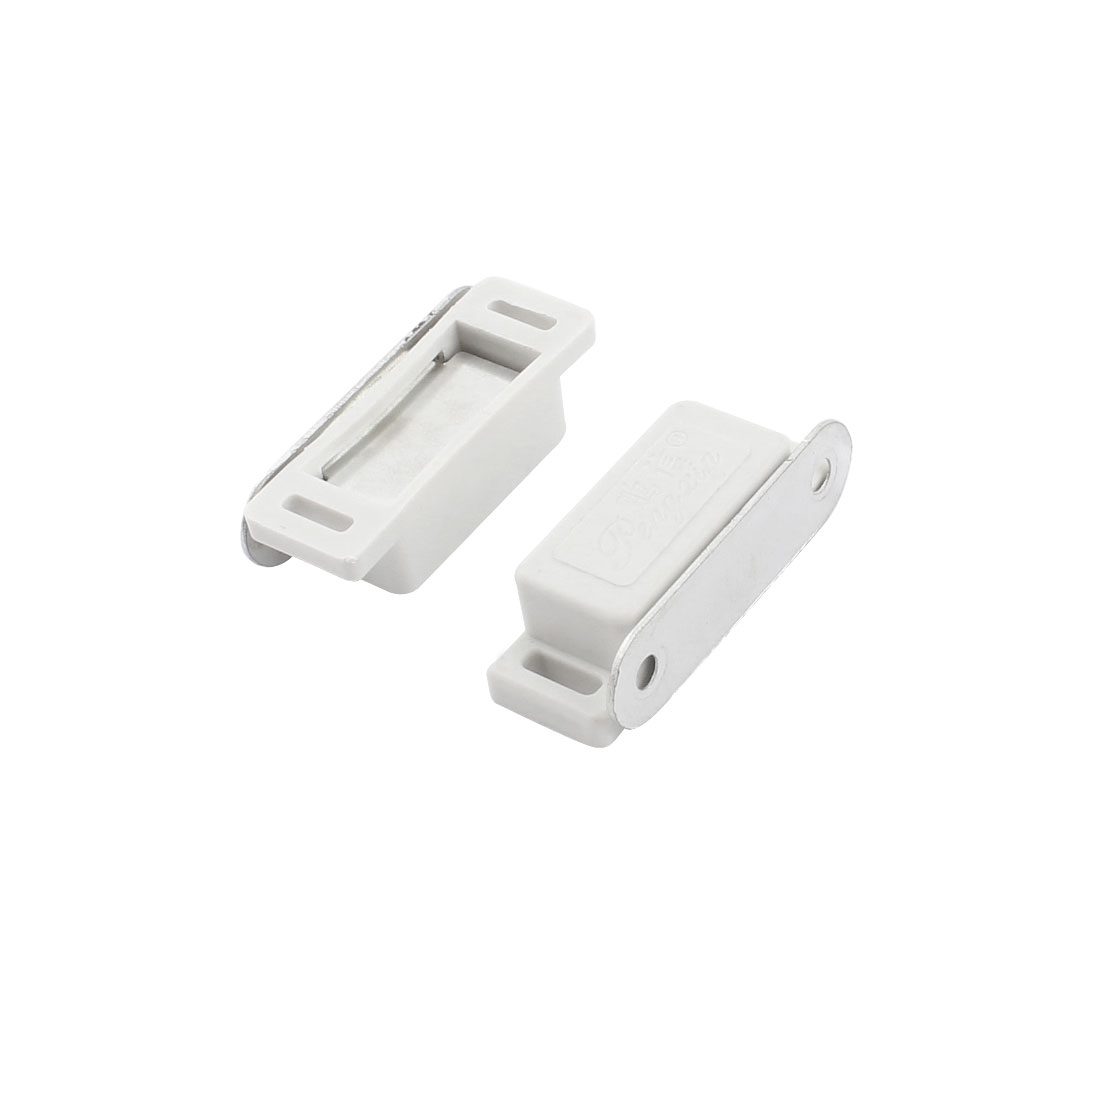 2 Pcs White Plastic Shell Metal Plate Cabinet Door Magnetic Catch Set 1.7""